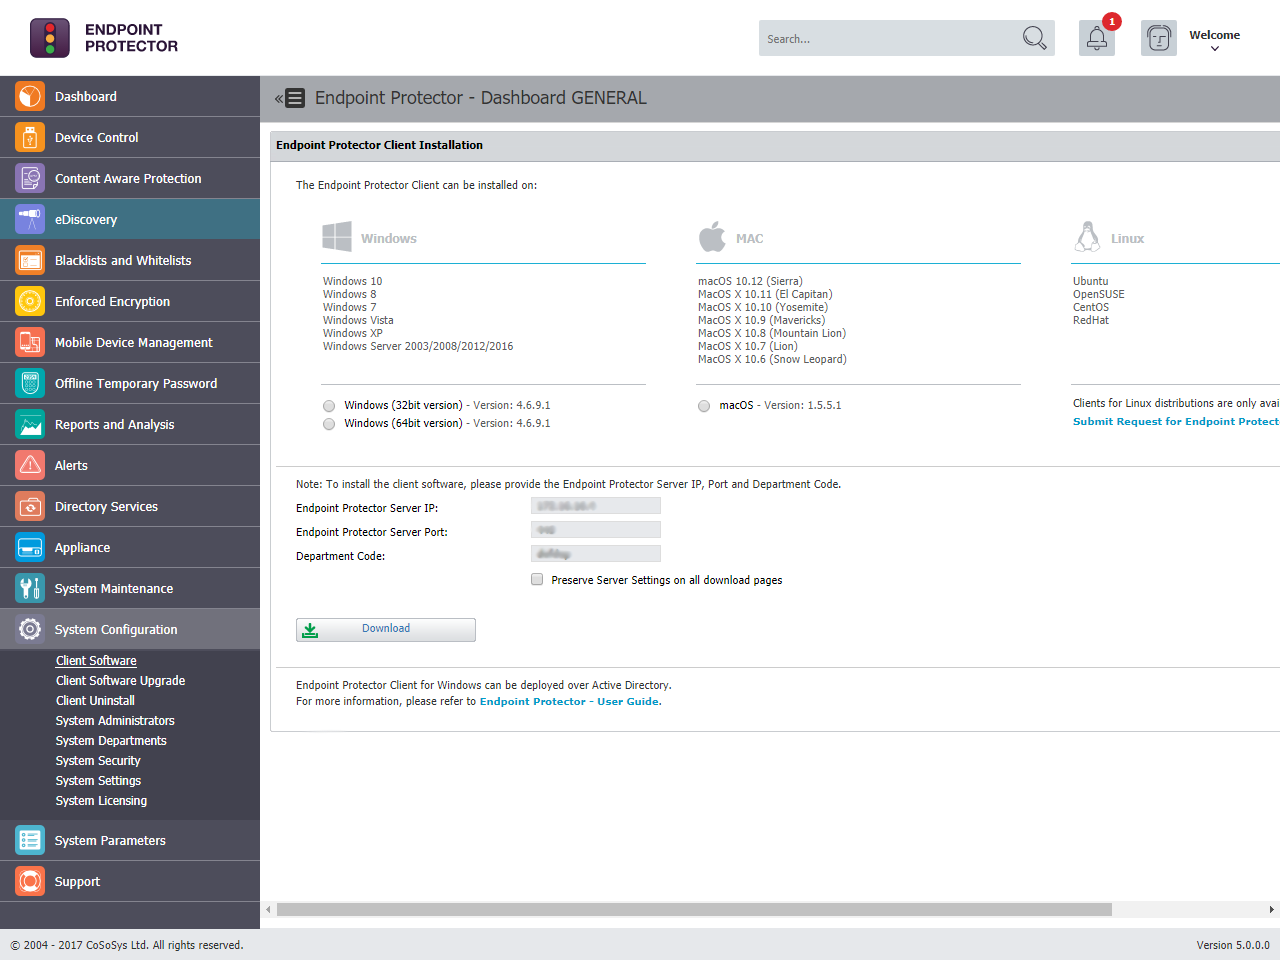 Endpoint Protector - Client Software